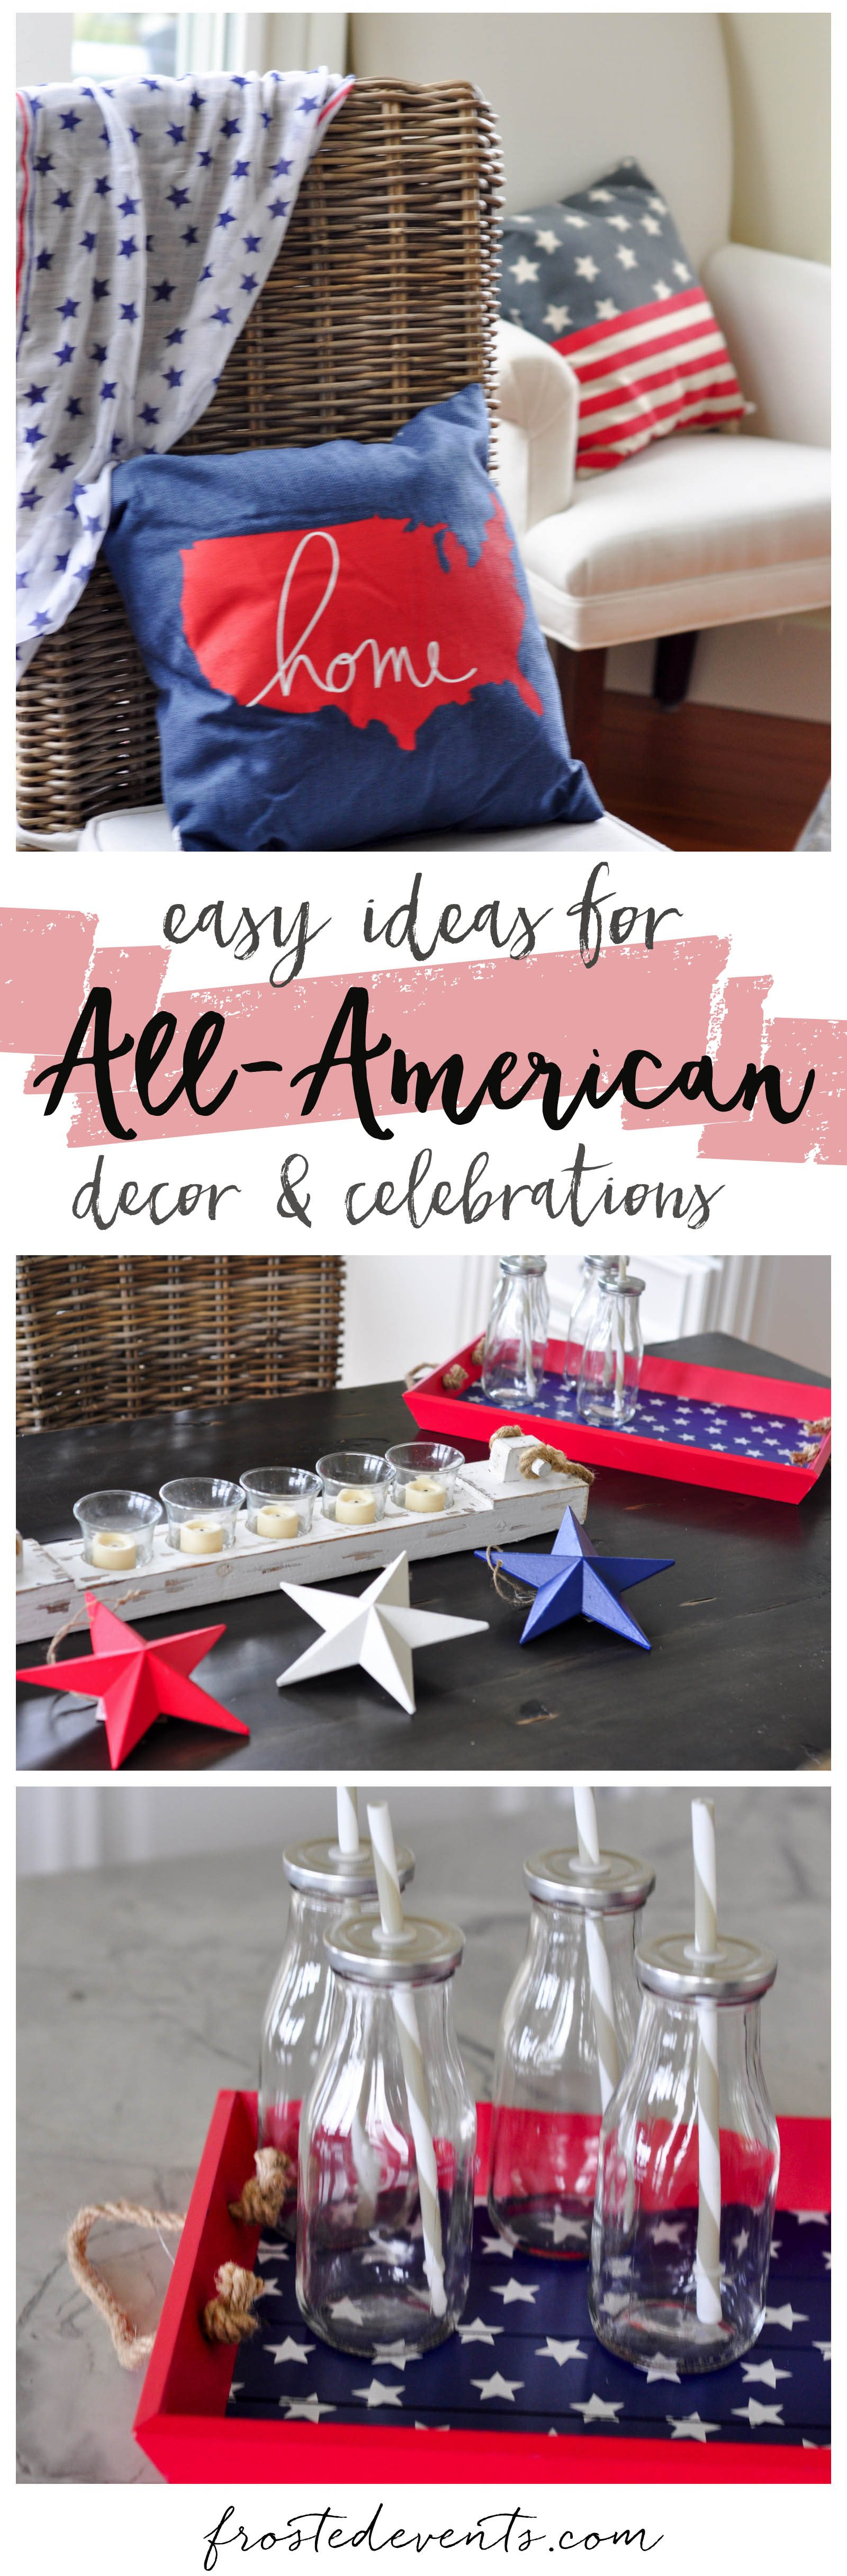 Fourth of July Party Ideas and 4th of July Desserts Recipes Decorations